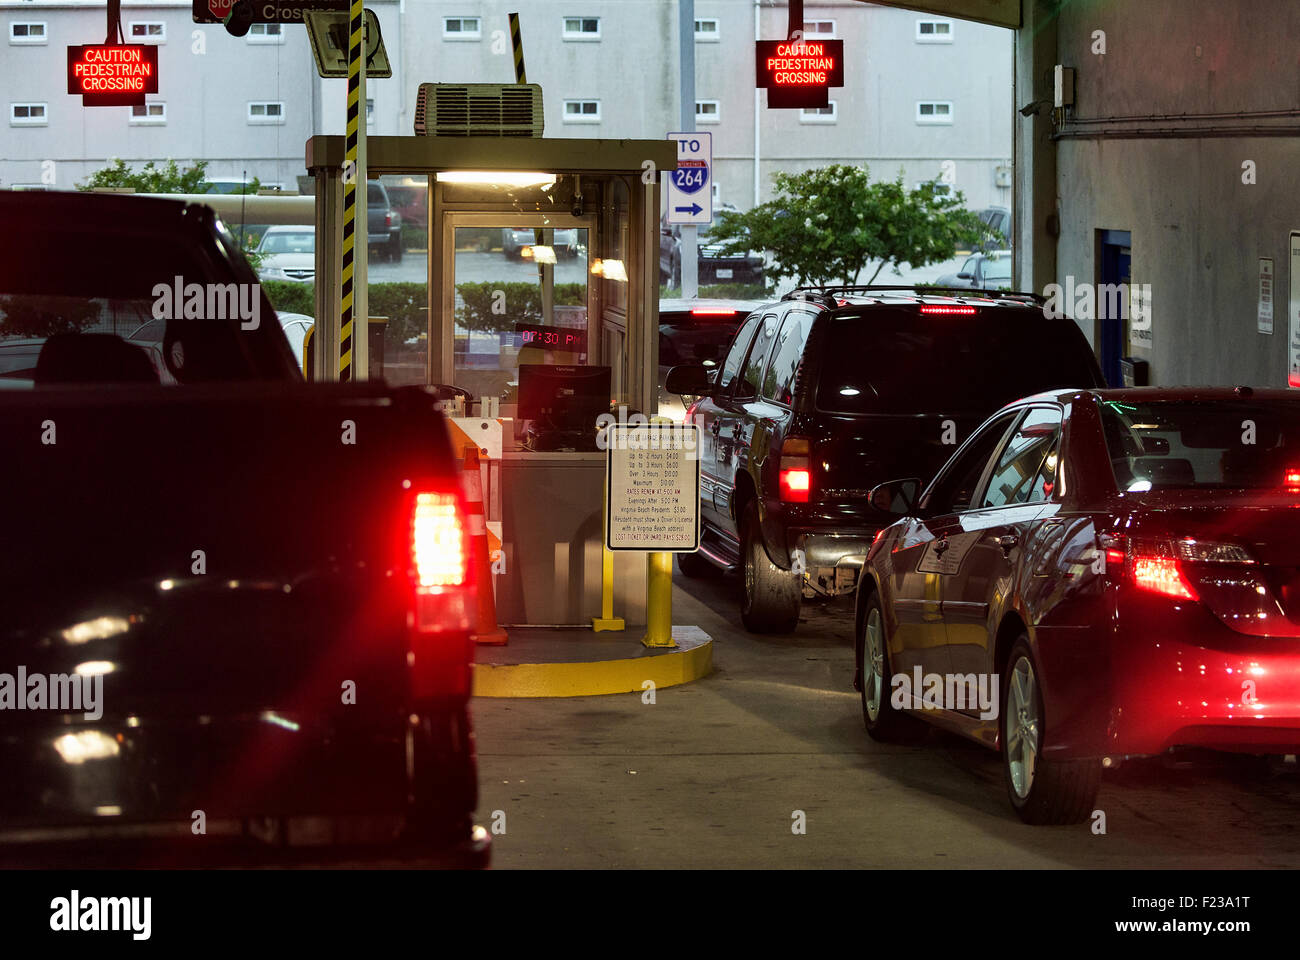 Cars wait to pay fee at a parking garage exit. Stock Photo